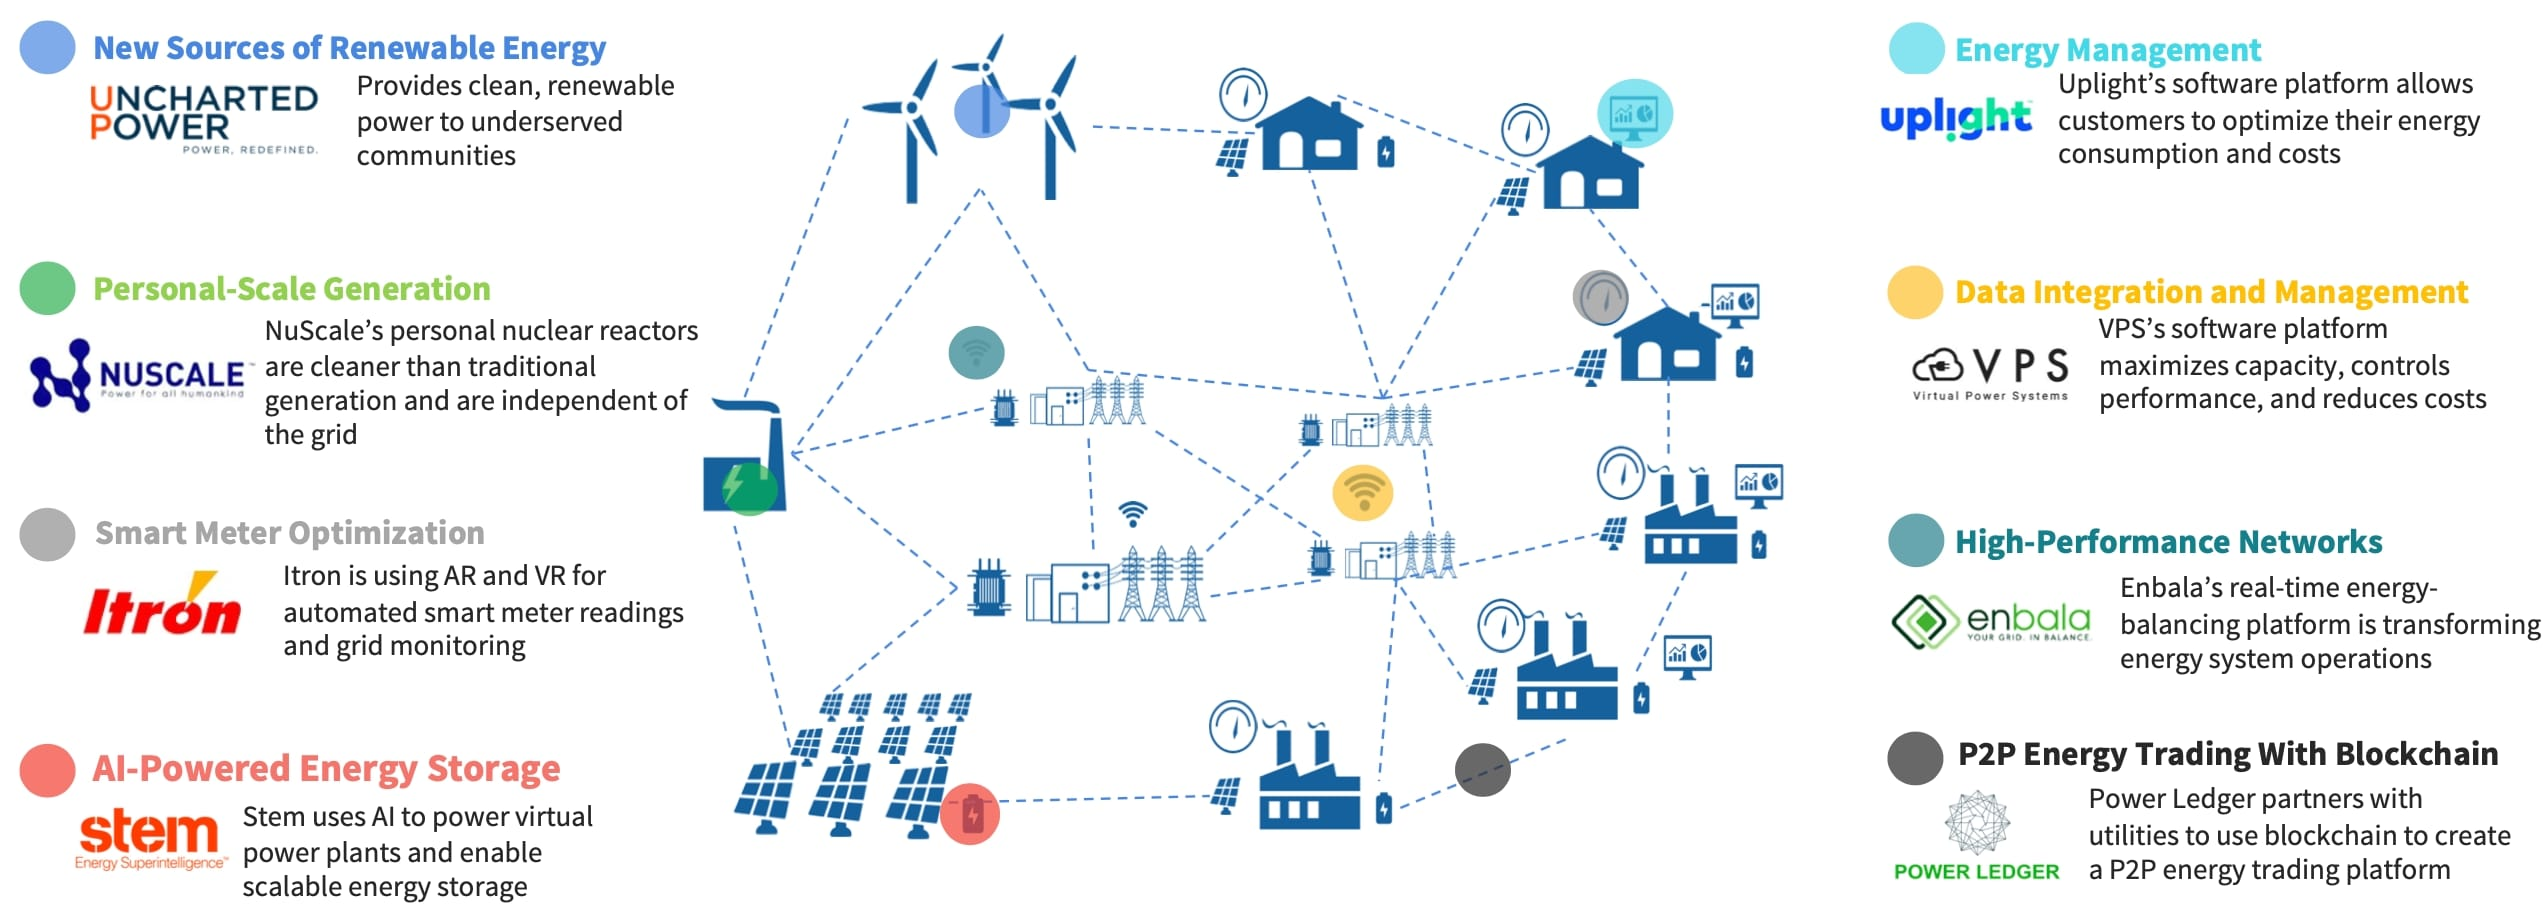 Innovators are maneuvering to enable future energy systems